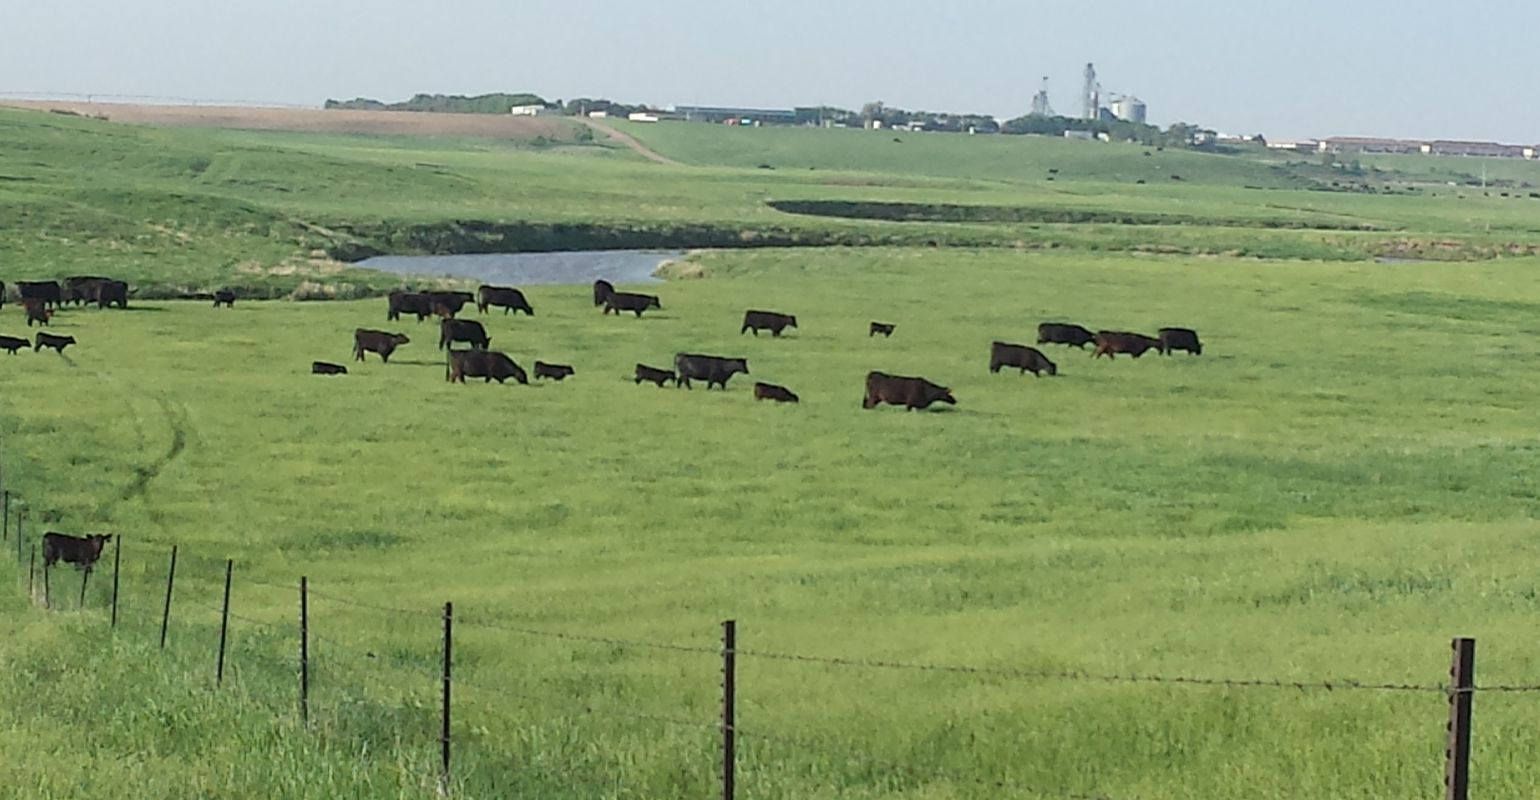 black cattle grazing near waterway